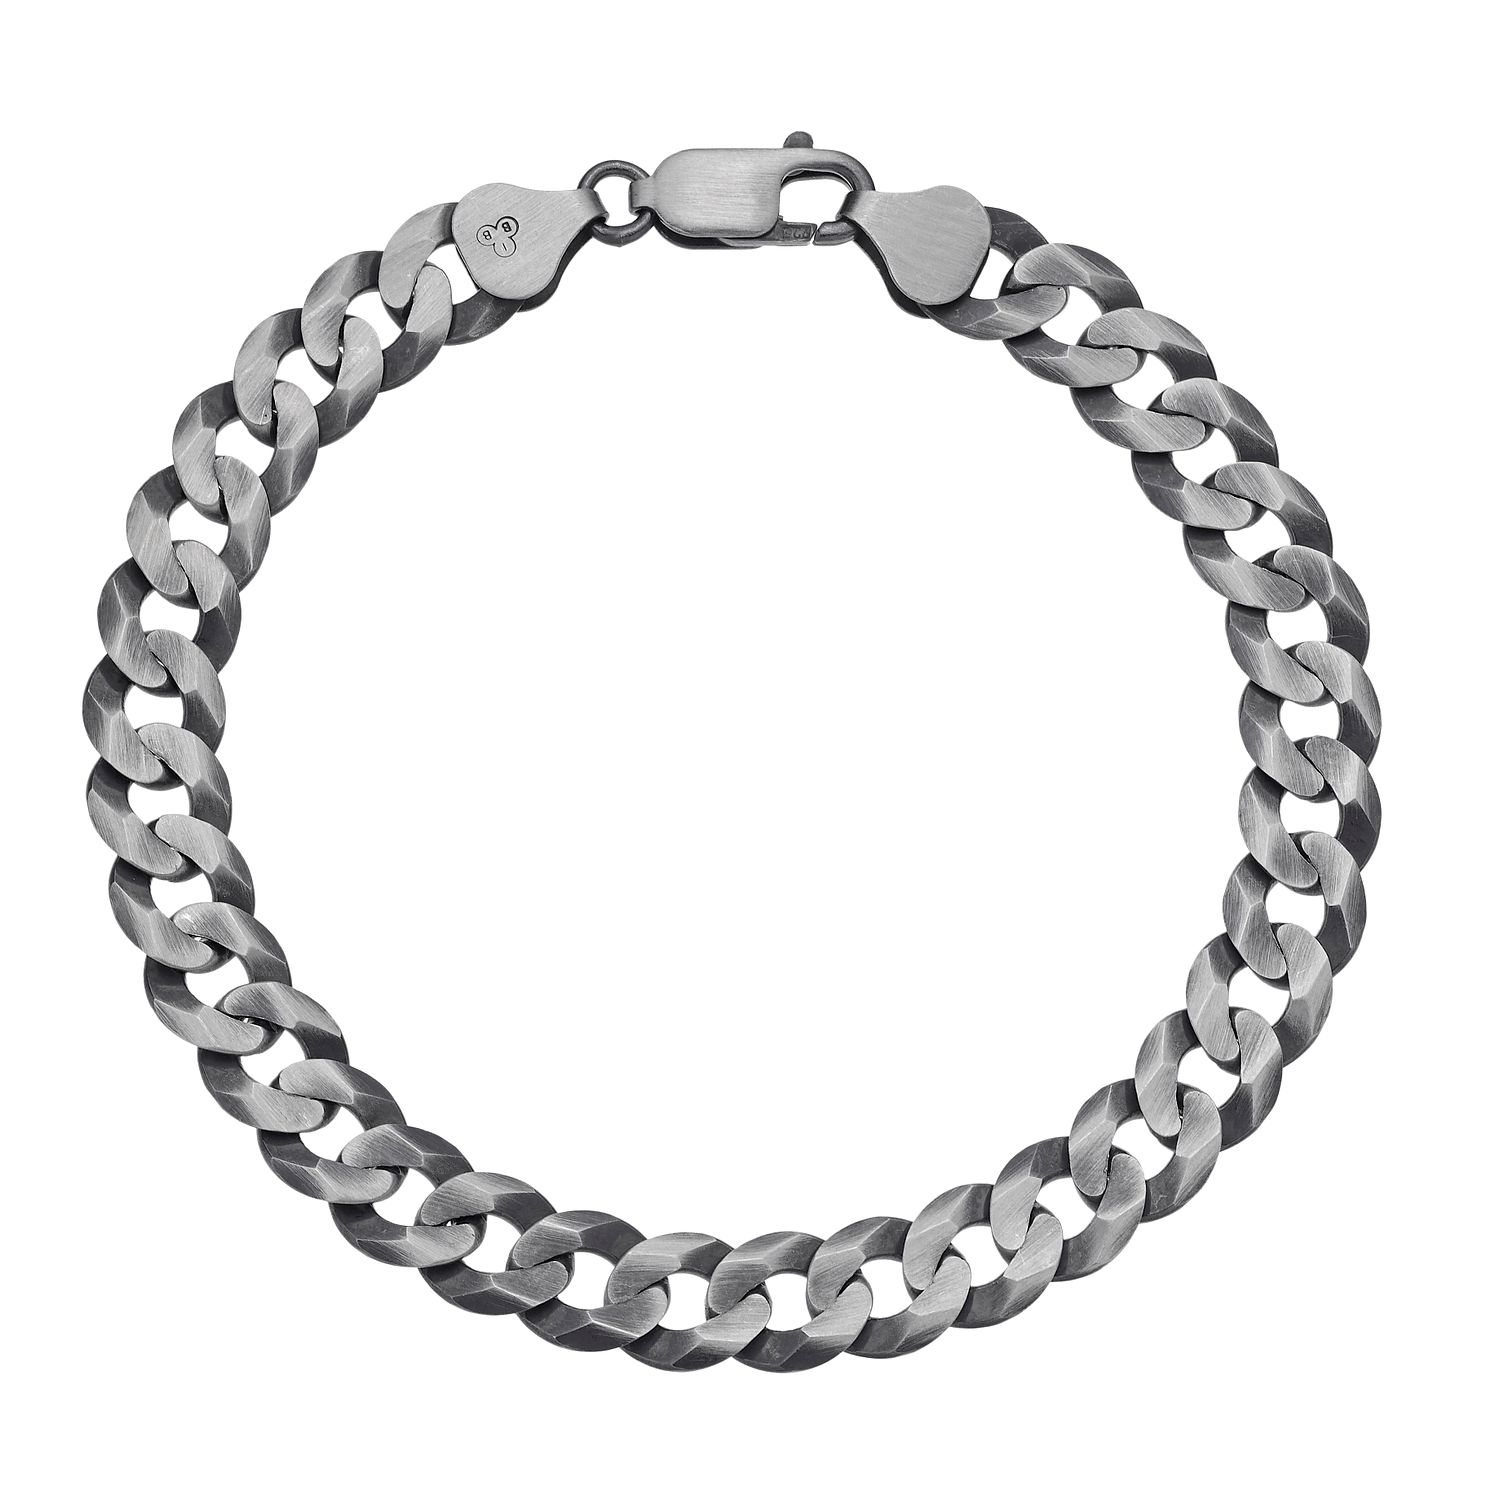 Sterling Silver 8 Inch Curb Chain Bracelet - Product number 3032930